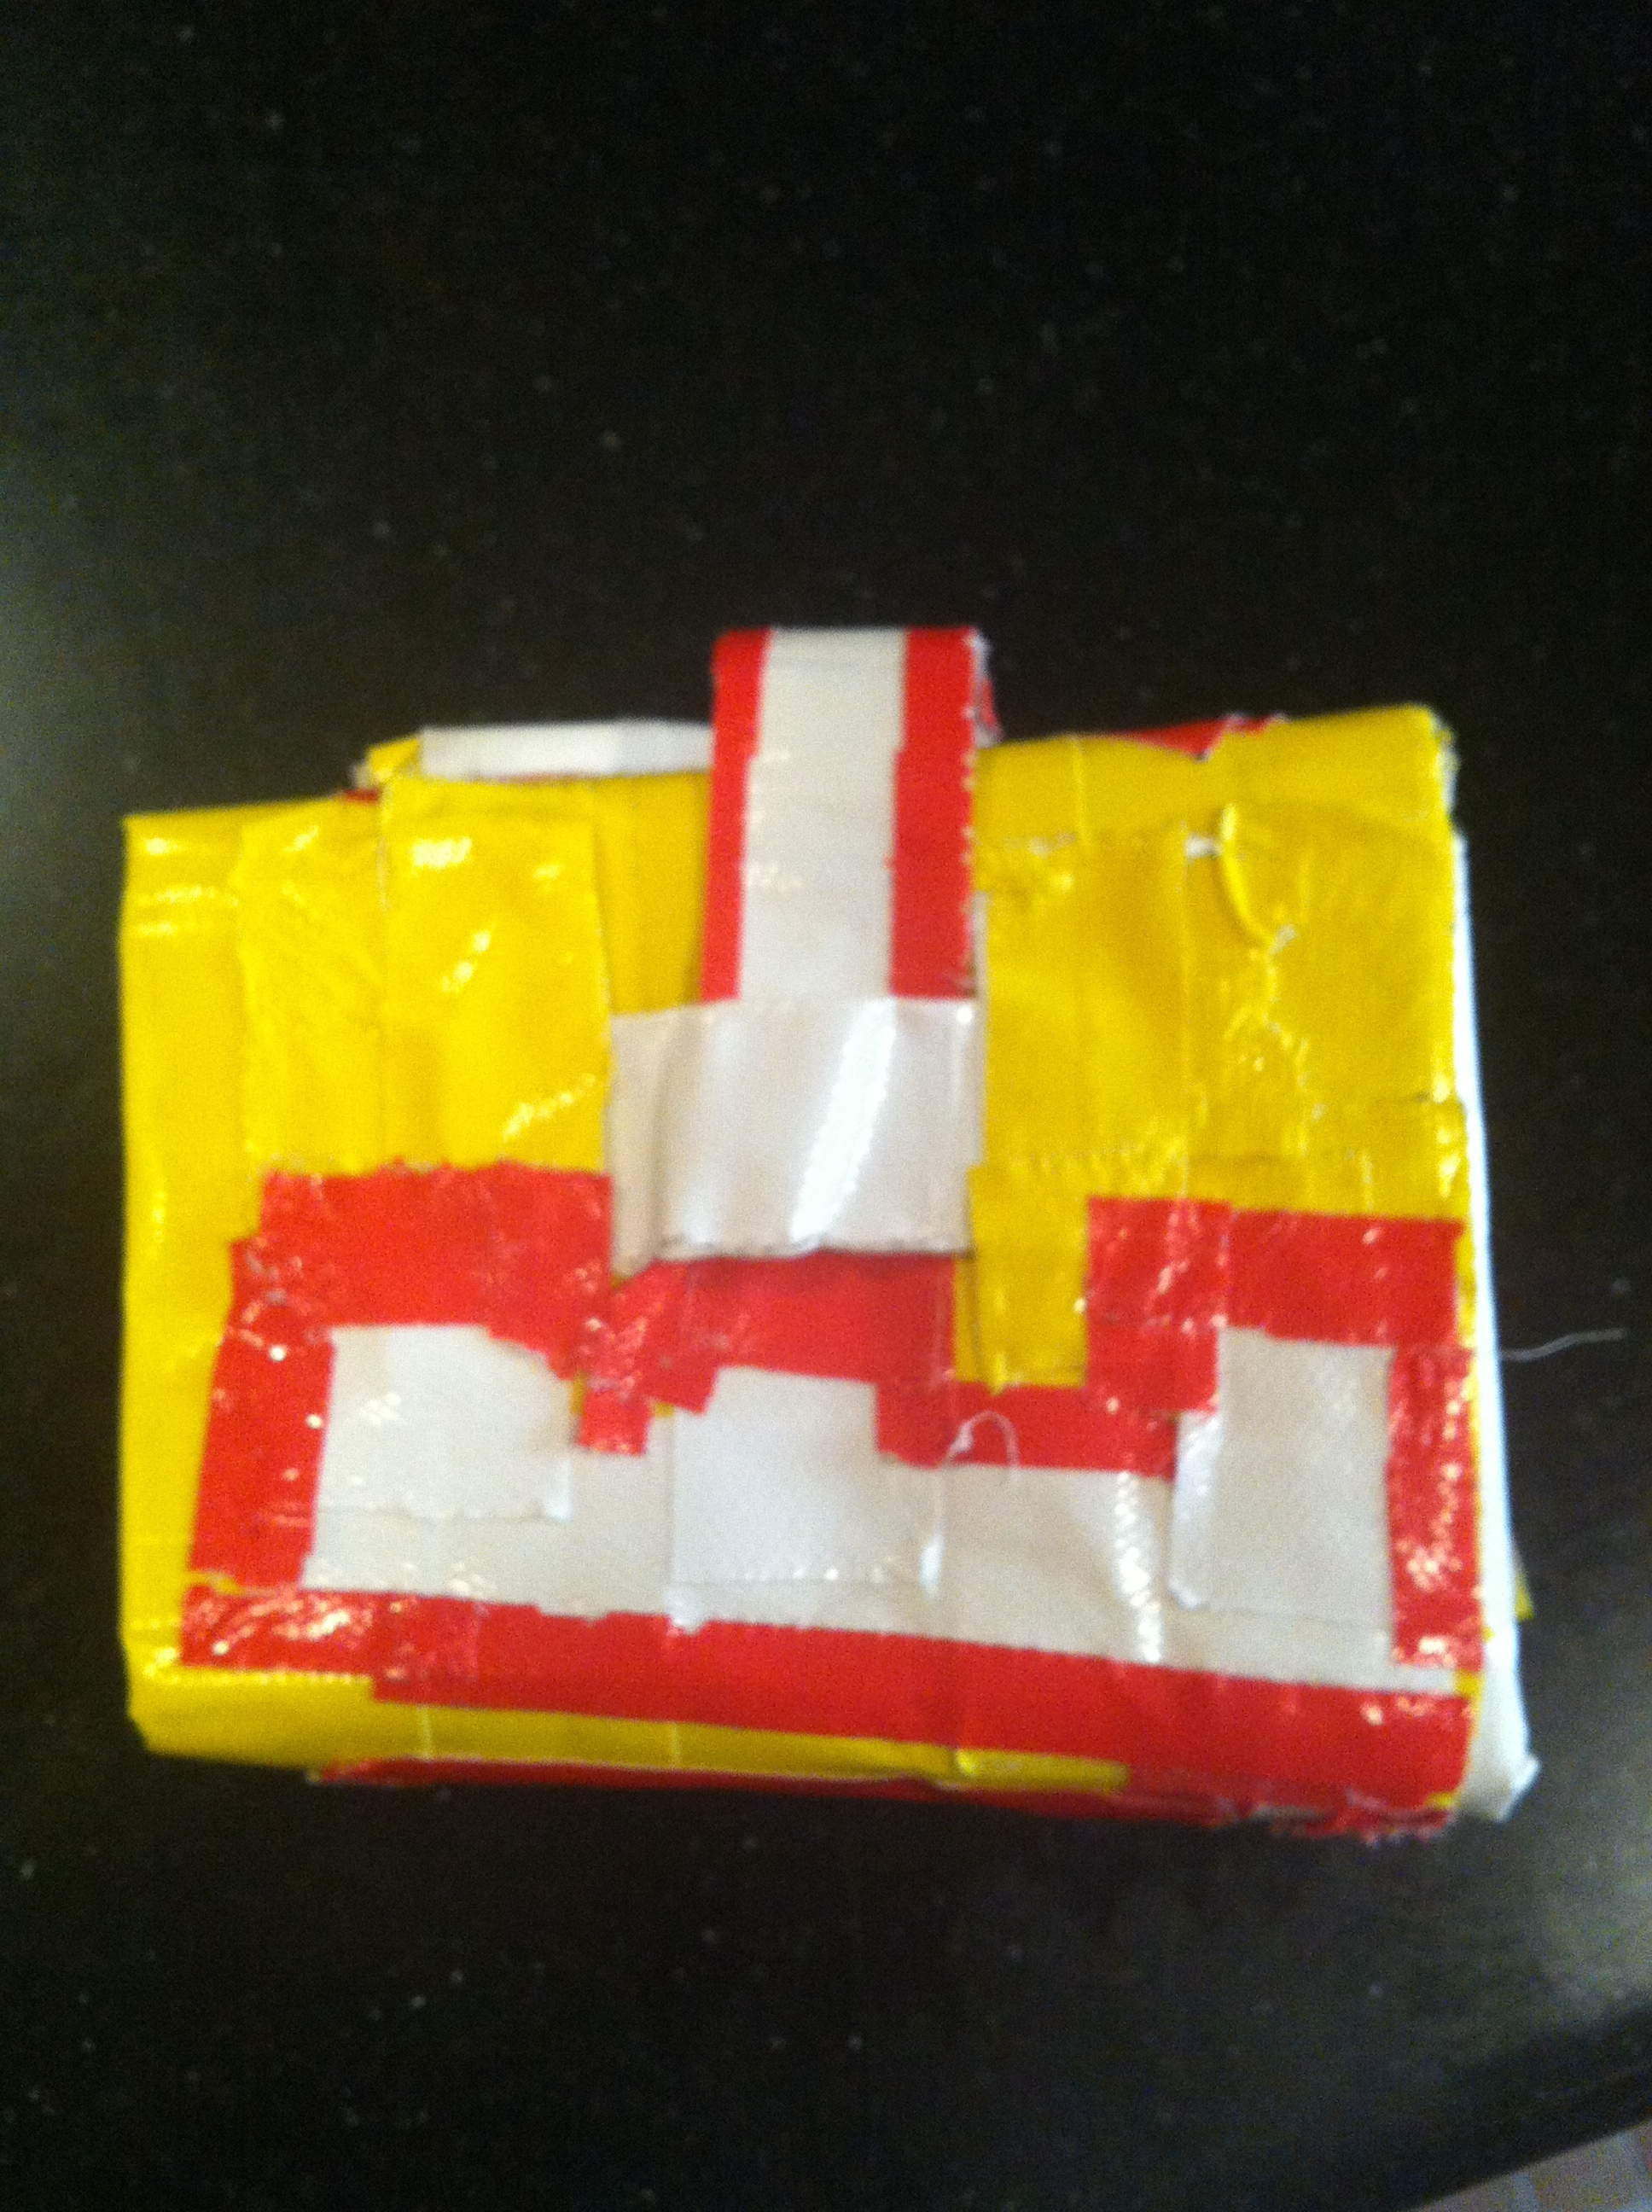 A duct tape wallet gifted to Kiddo from a little girl at summer camp. This is serious craftsmanship by a 10-year-old (it even has slots inside for pictures and credit cards, and has Kiddo's name etched out in red and white tape). I have a feeling someone is spending a lot of quality time with a Doha stay-at-home dad living out every man's duct tape crafting fantasy.